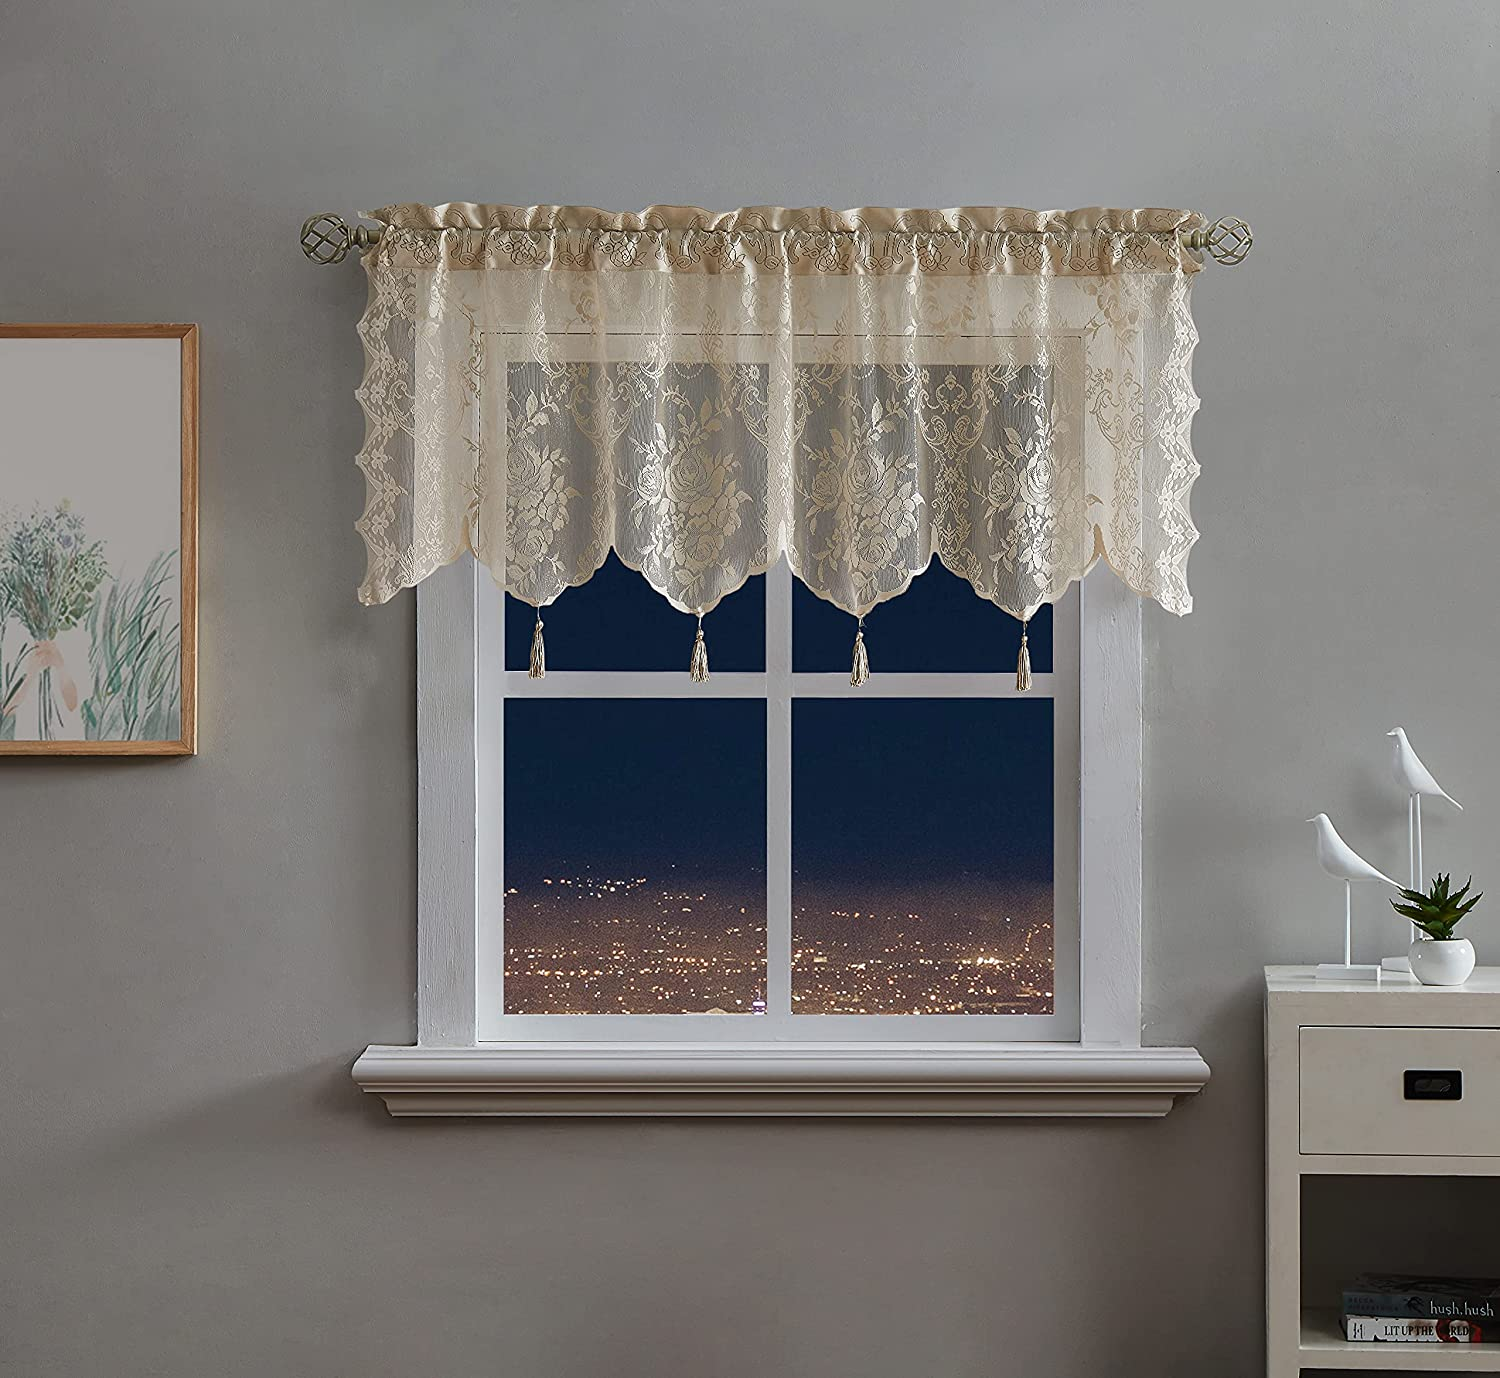 LinenZone - English Rose Design Max 87% OFF Sheer New life Valance Lace Voile Semi